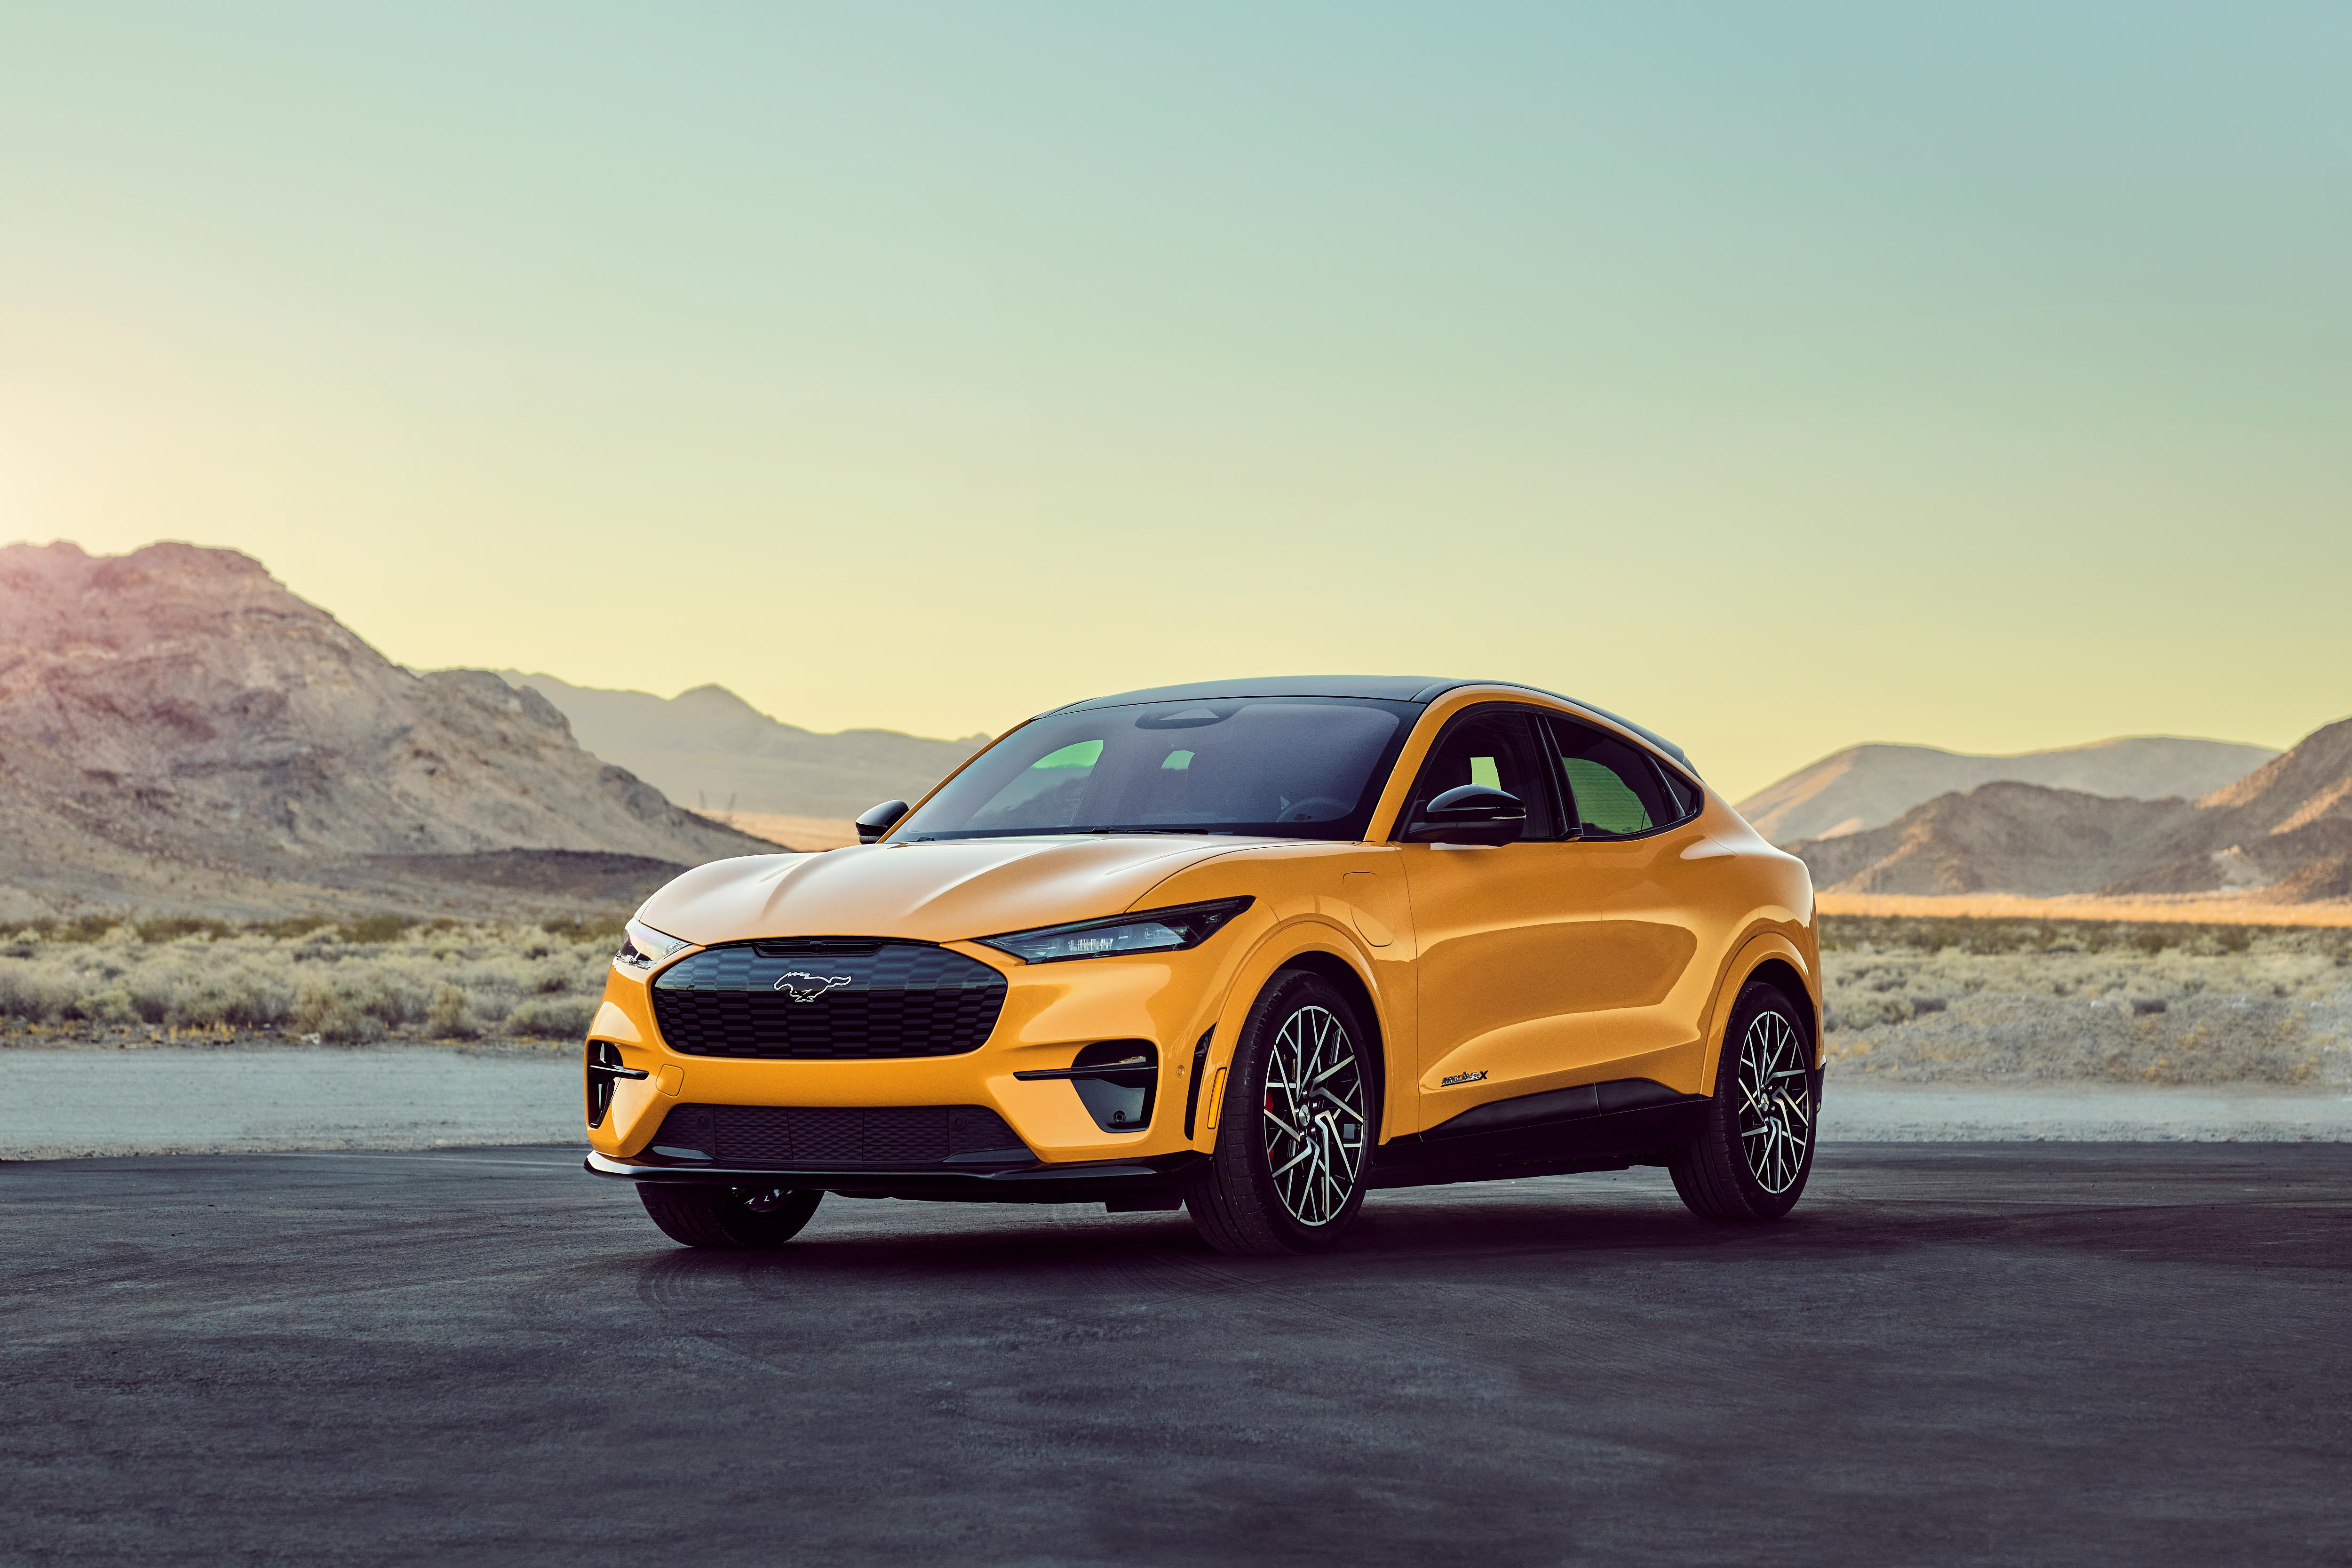 Ford Mustang Mach E Gt Performance Edition 2021 5k Hd Cars 4k Wallpapers Images Backgrounds Photos And Pictures 2021 ford mustang mach e 5k wallpaper